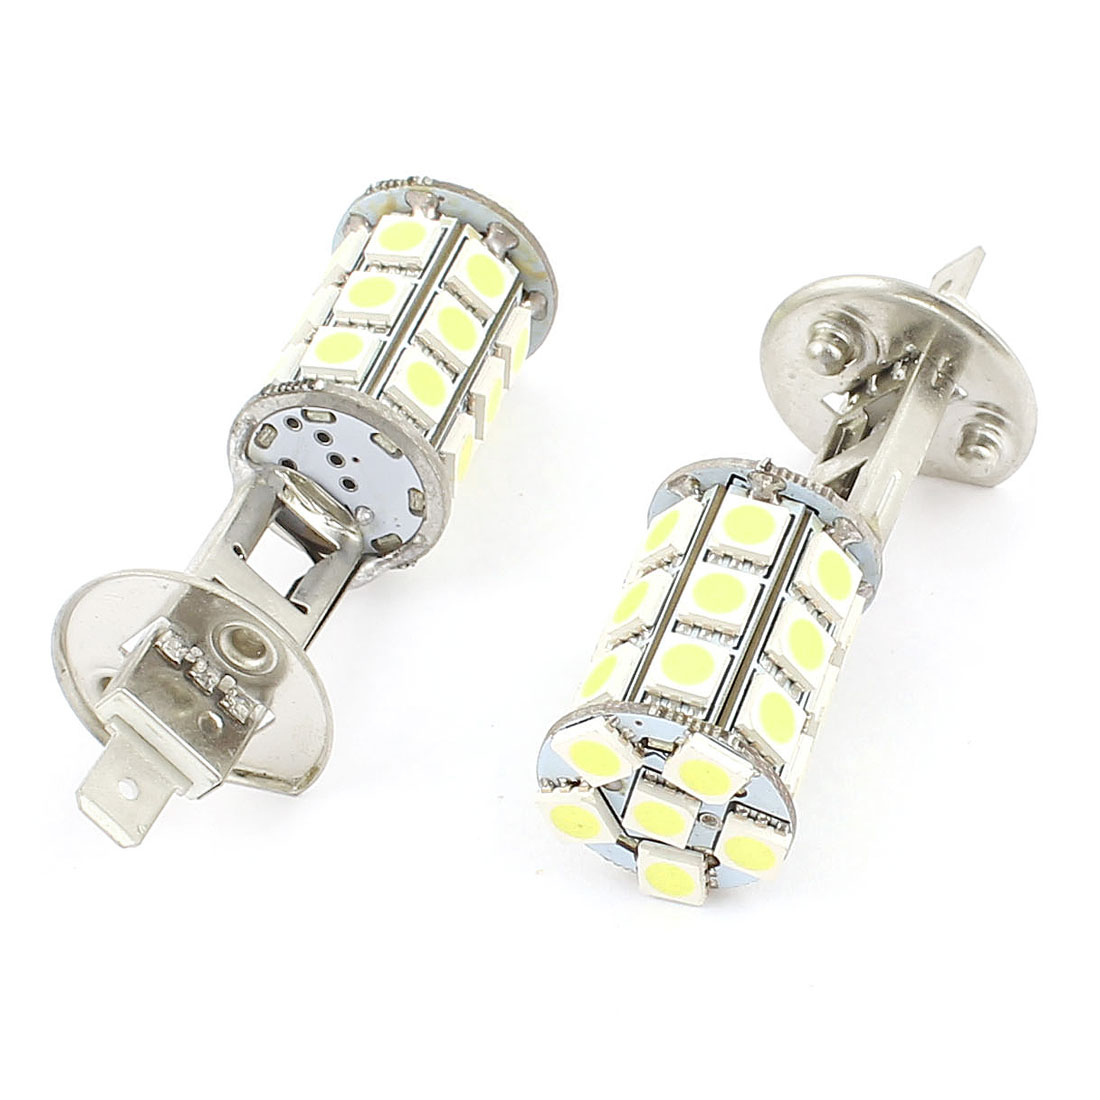 2 Pcs White 5050 SMD 27 LED H1 Car Headlight Foglight DRL Driving Light